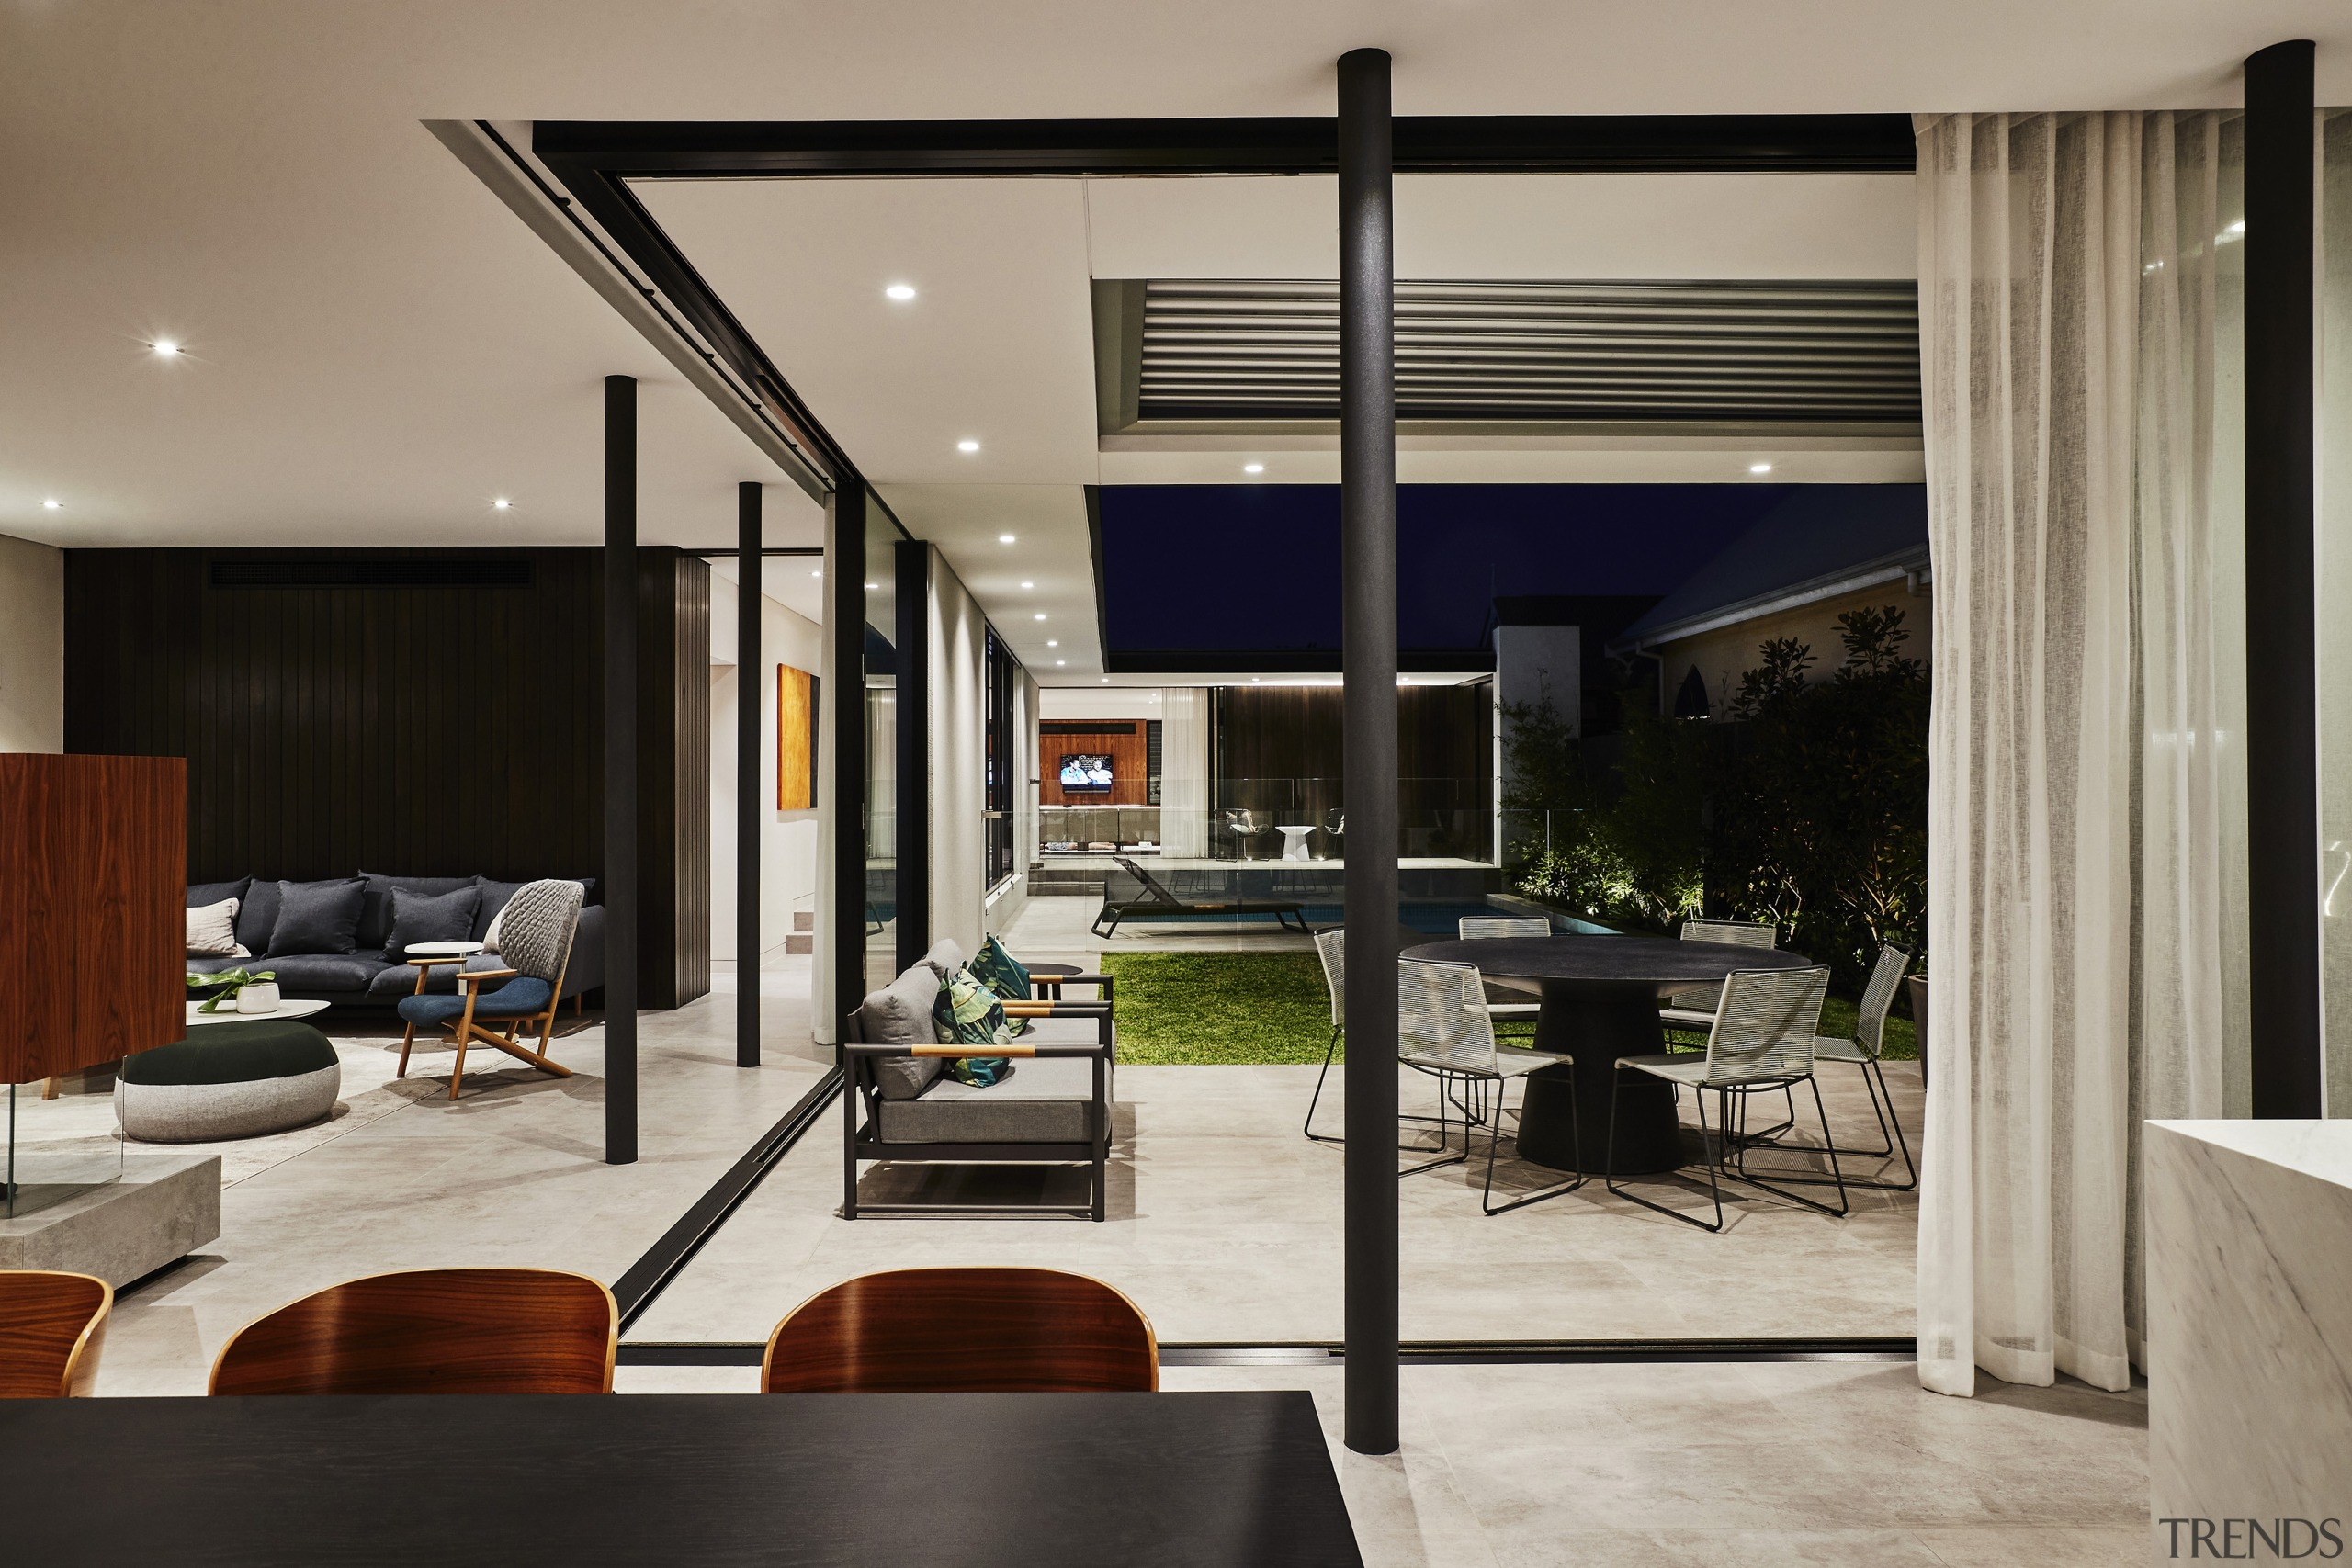 The outdoor living zone, pool included, is enclosed